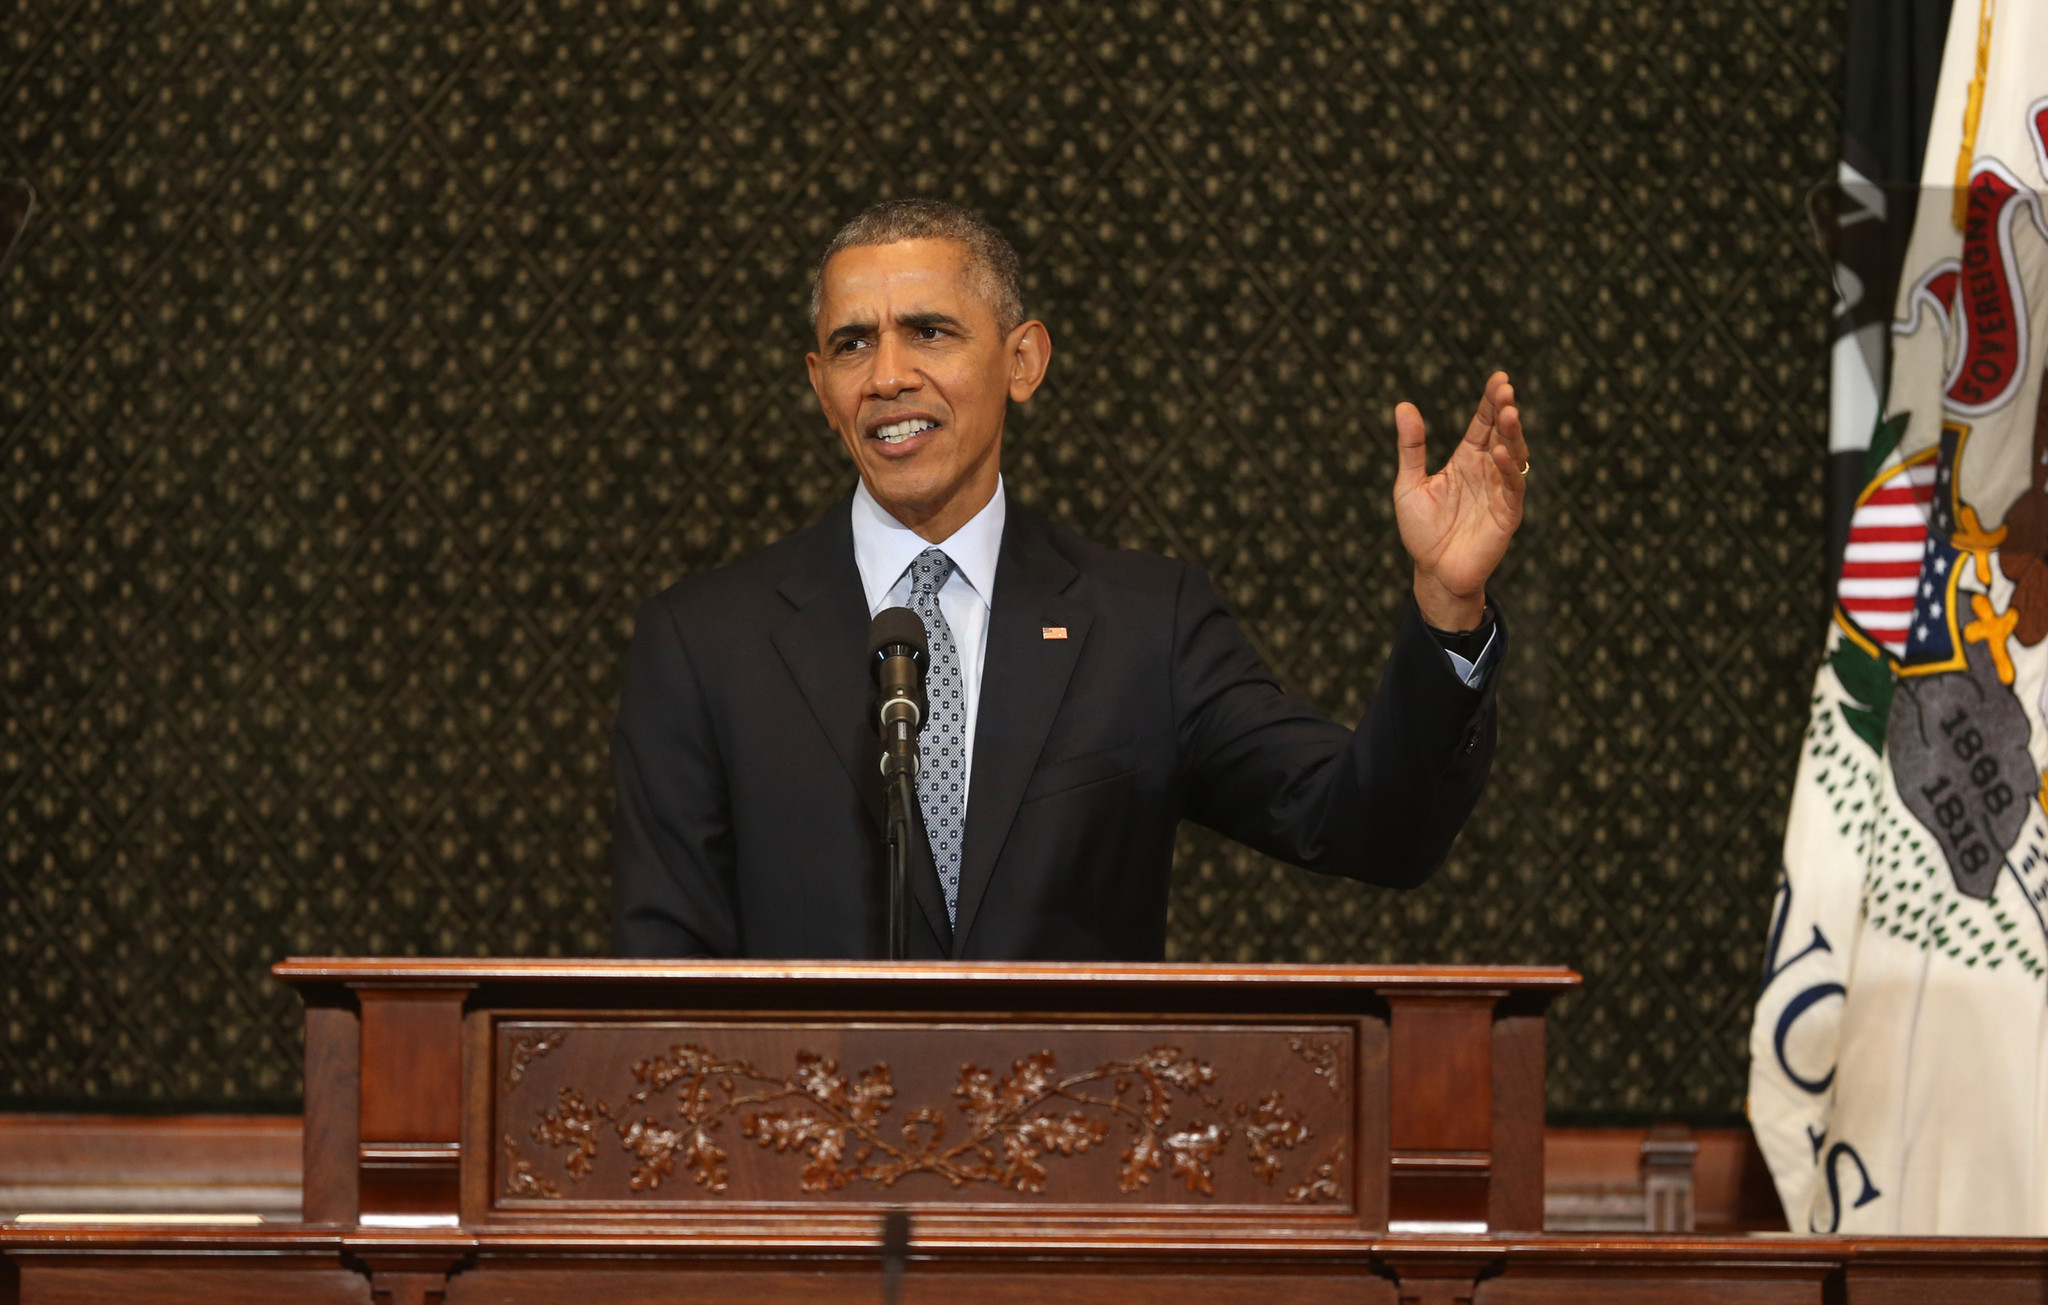 barack obama speech to the nation Barack obama is all set to deliver a speech in south africa after visiting kenya the speech is the centerpiece of birthday celebrations of nelson mandela in johannesburg  nation.